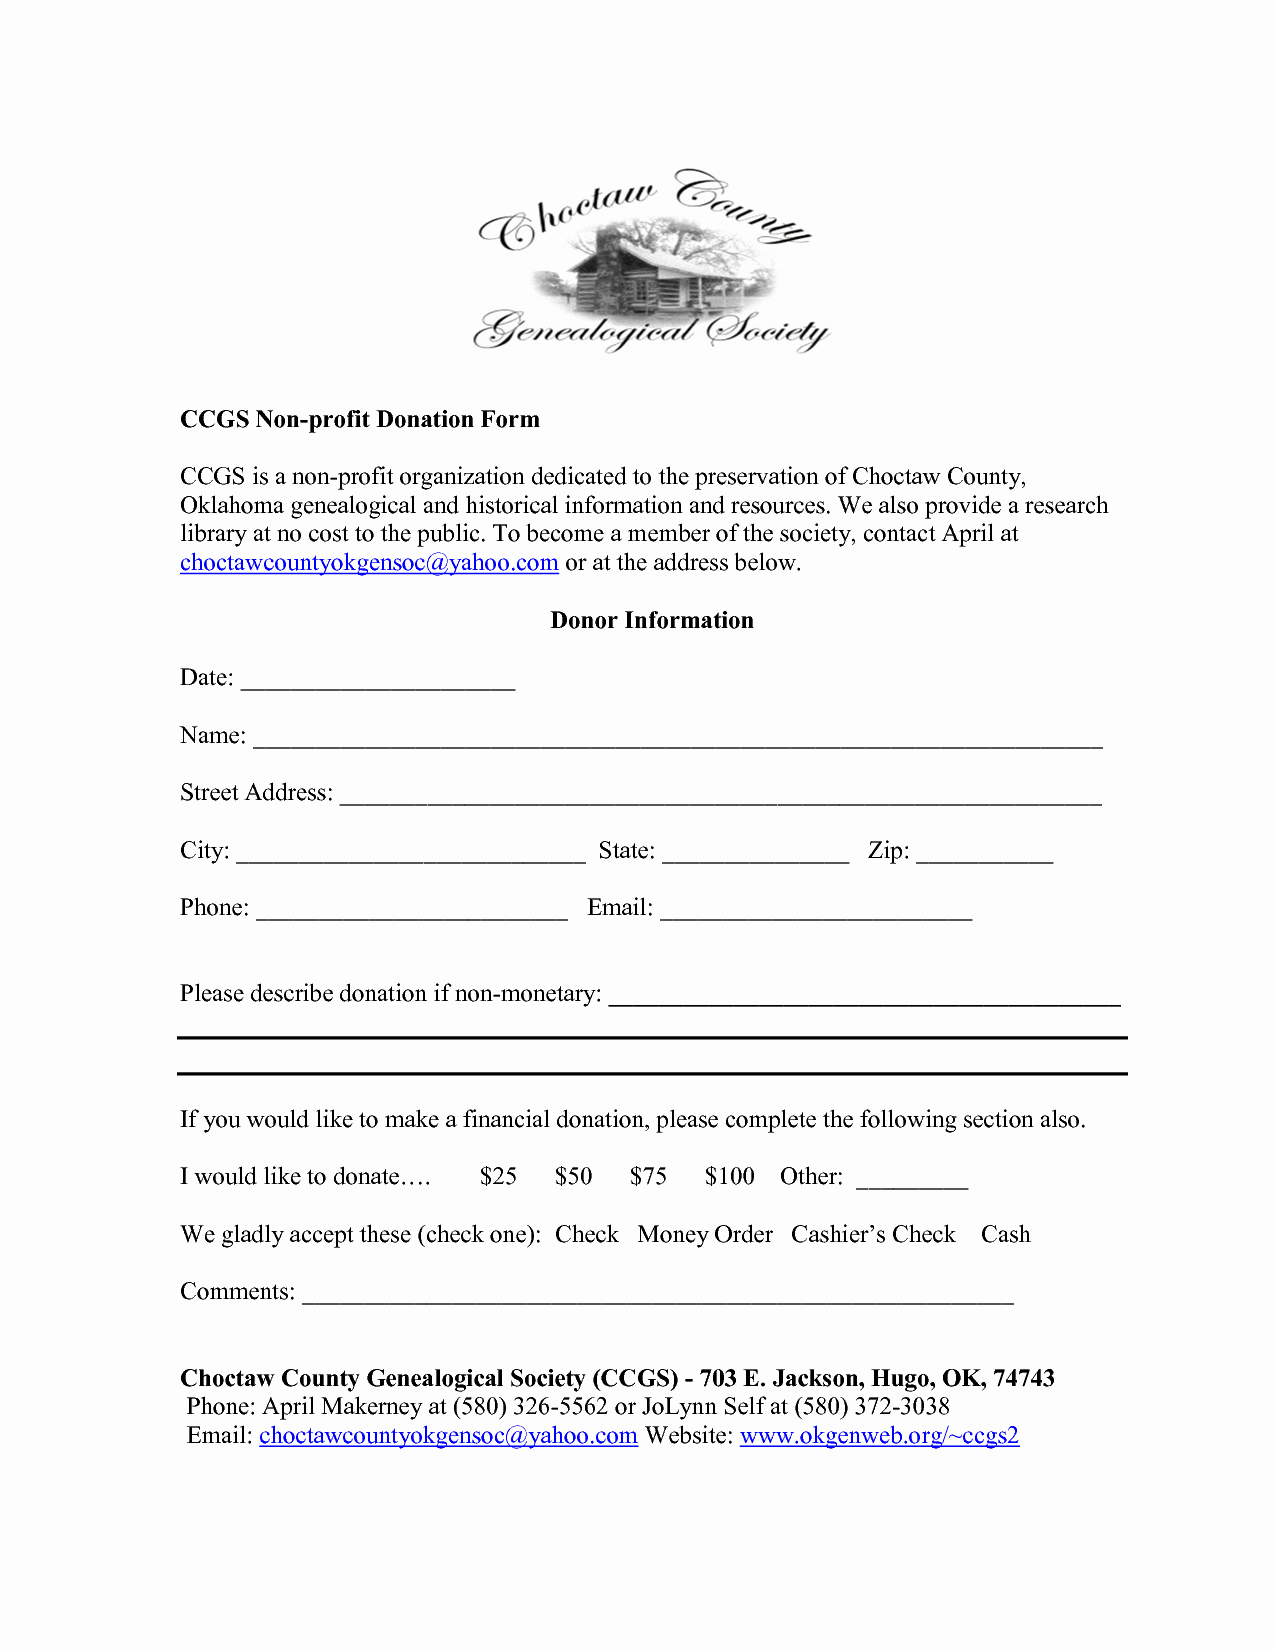 Non Profit Donation form Template Elegant Best S Of Receipt bylaws Template 501c3 Donation